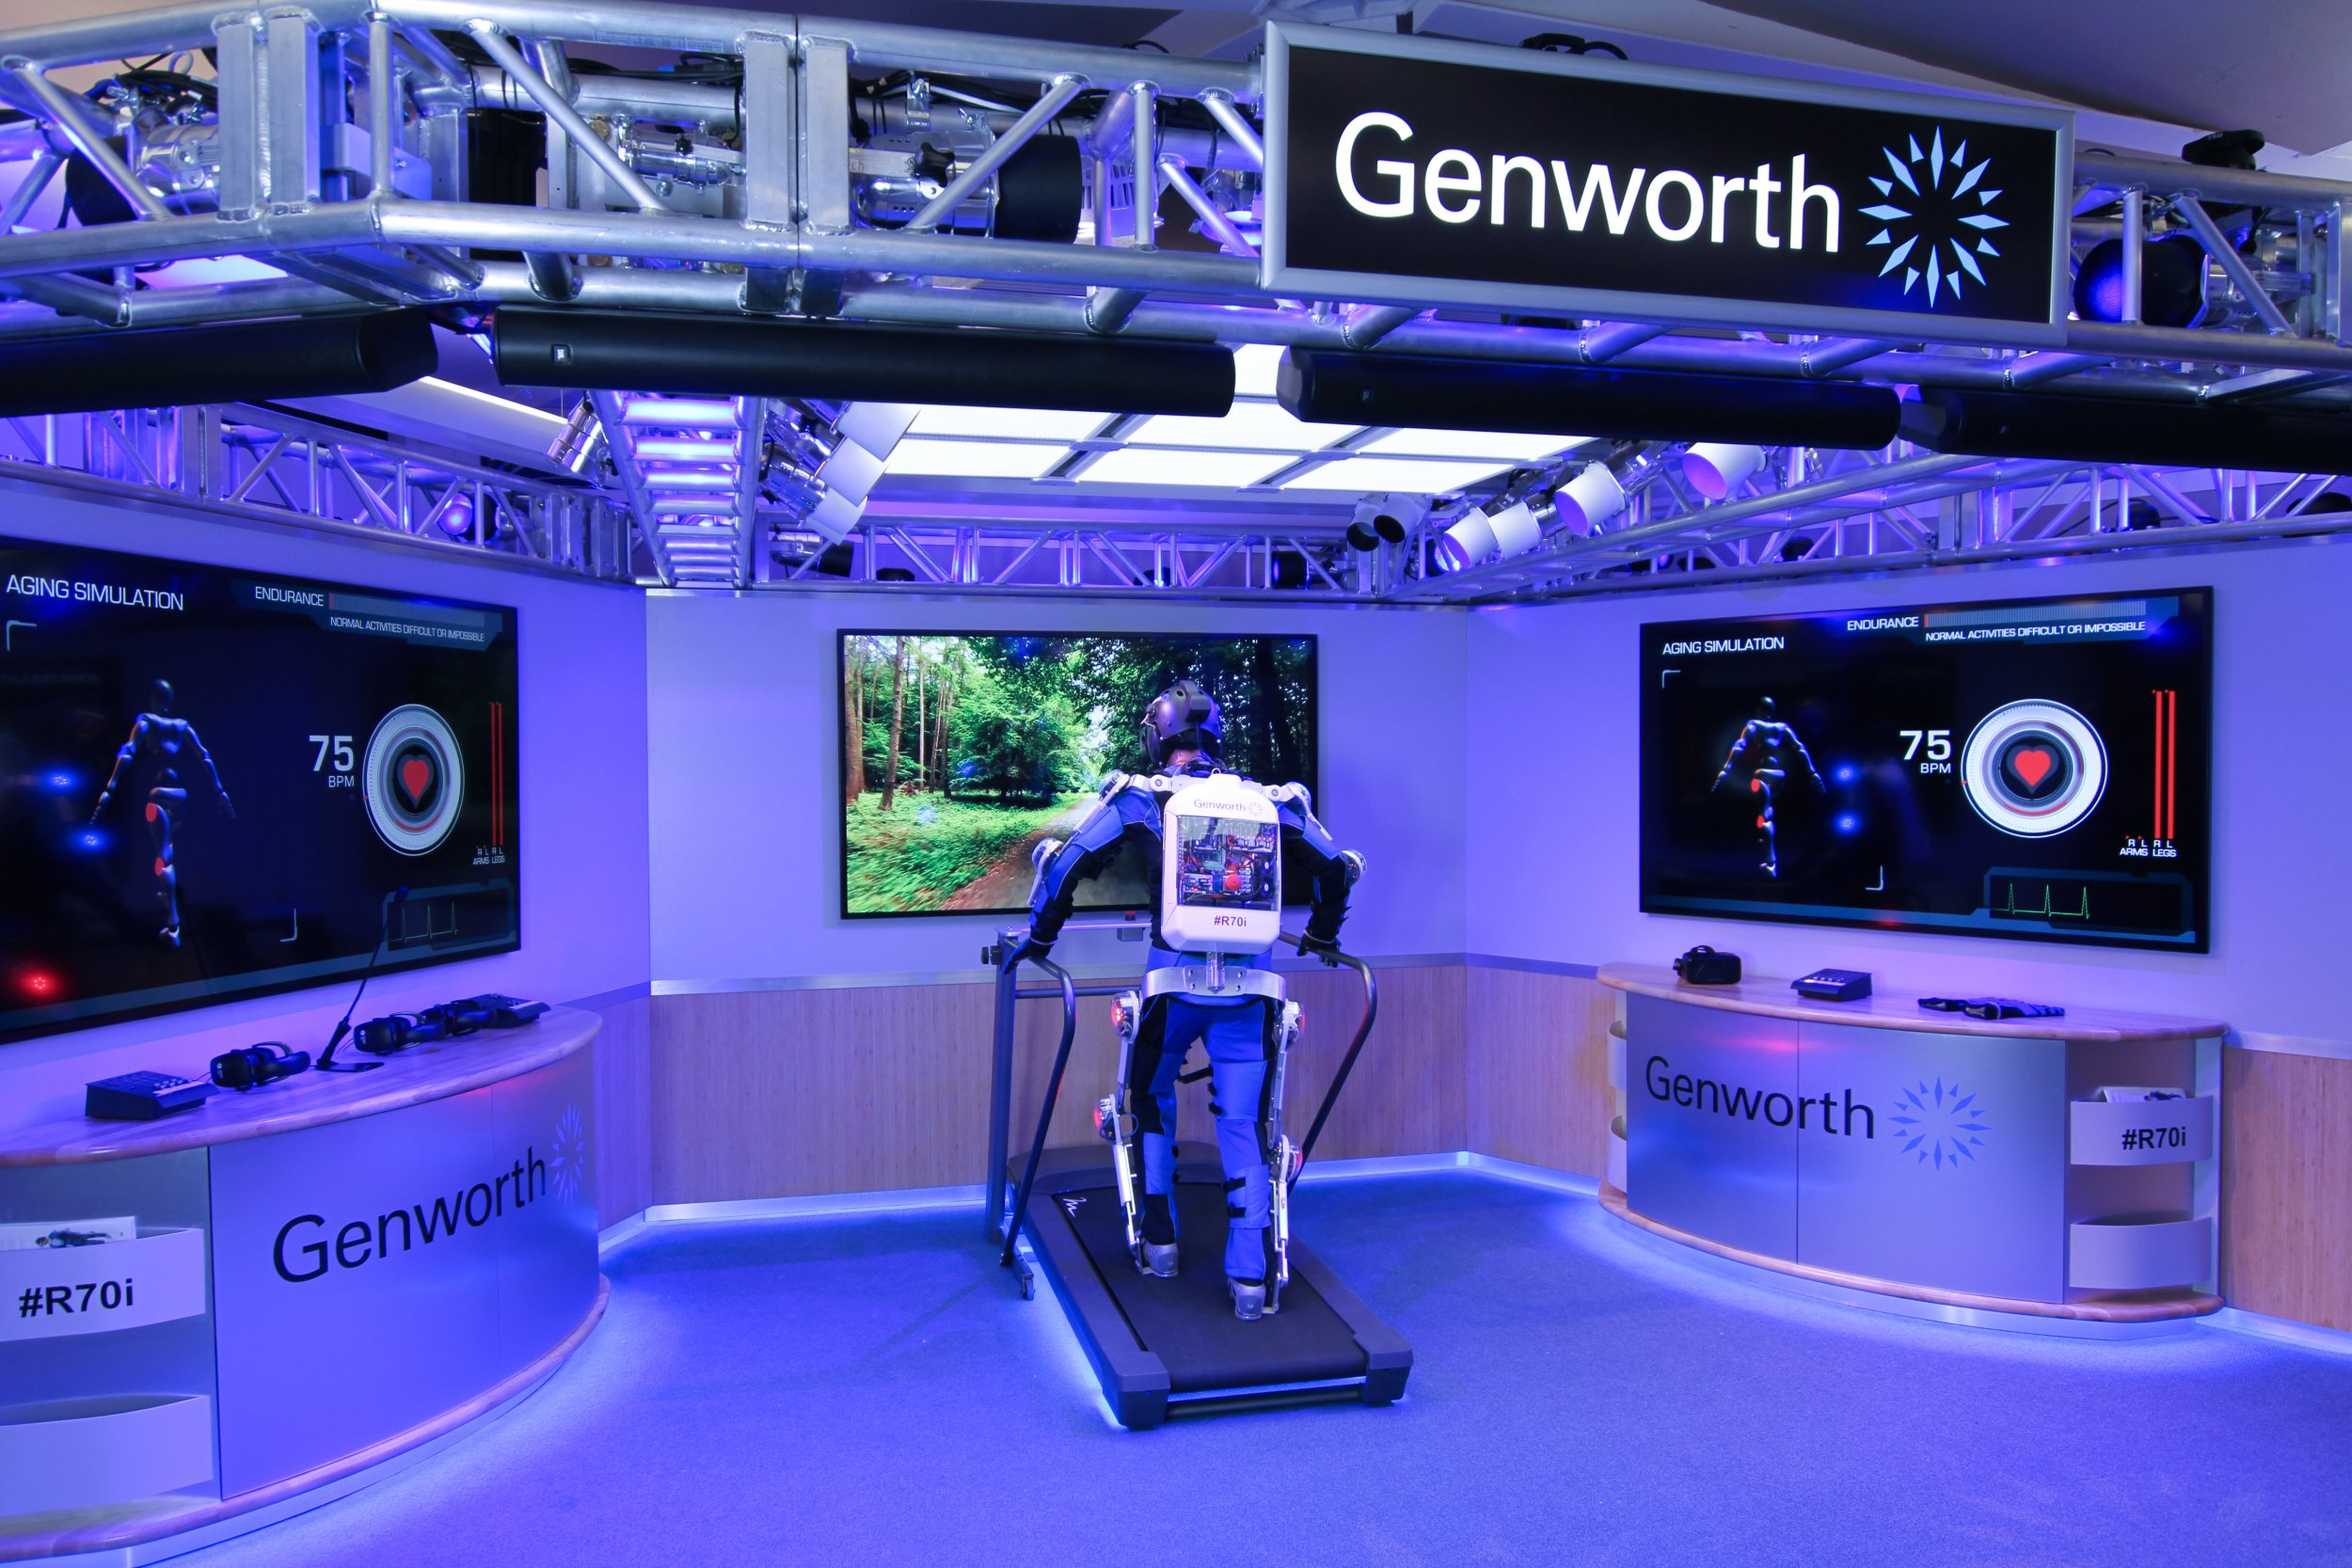 genworth_agesuit__9_of_10_